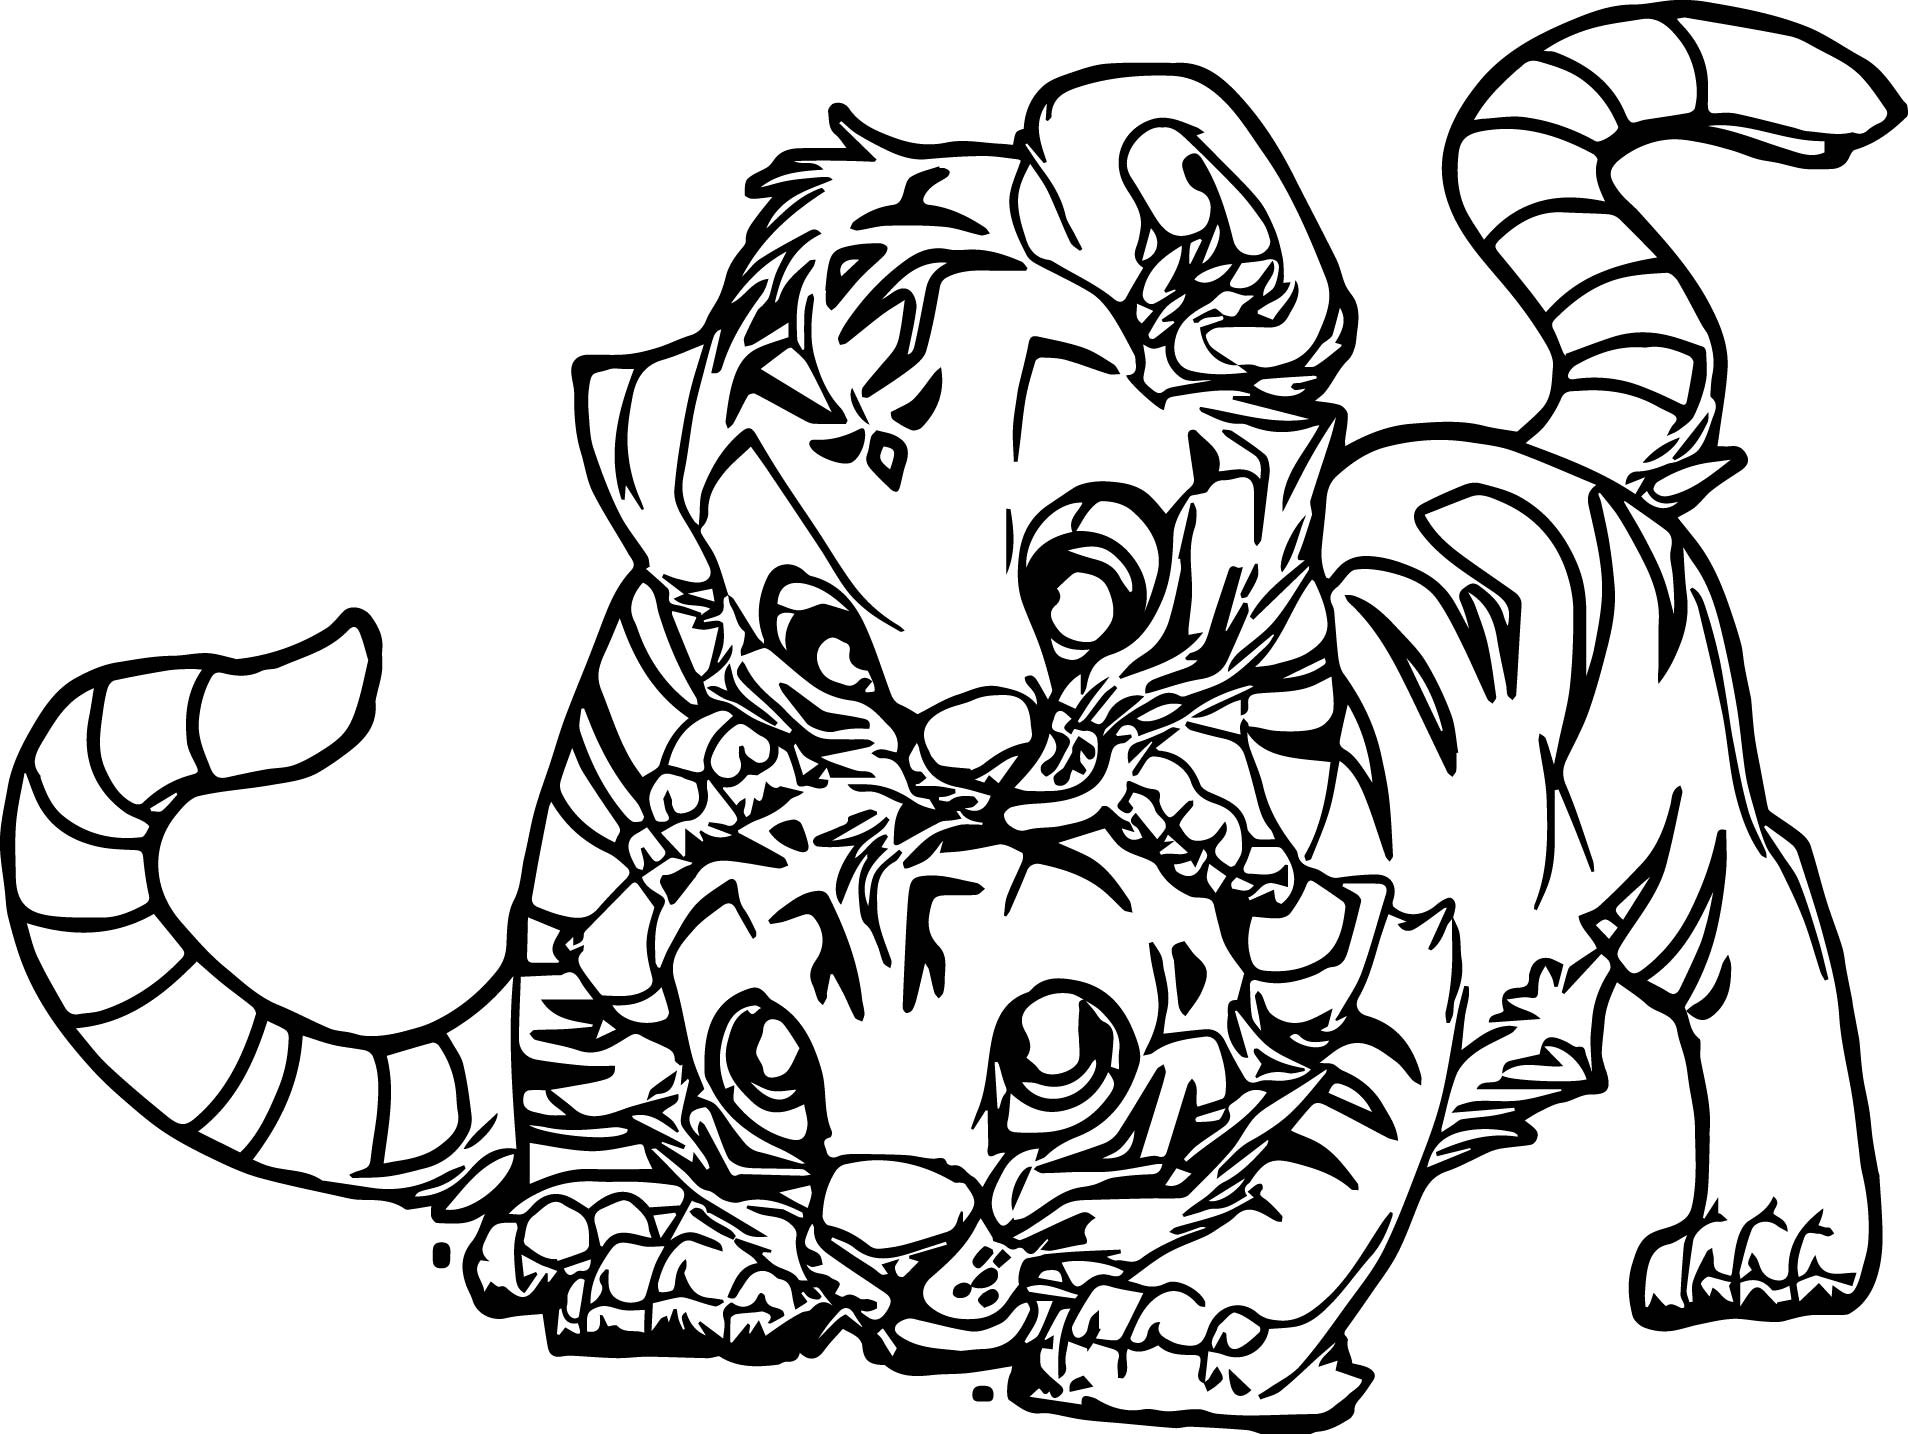 coloring tiger free printable tiger coloring pages for kids tiger coloring 1 1